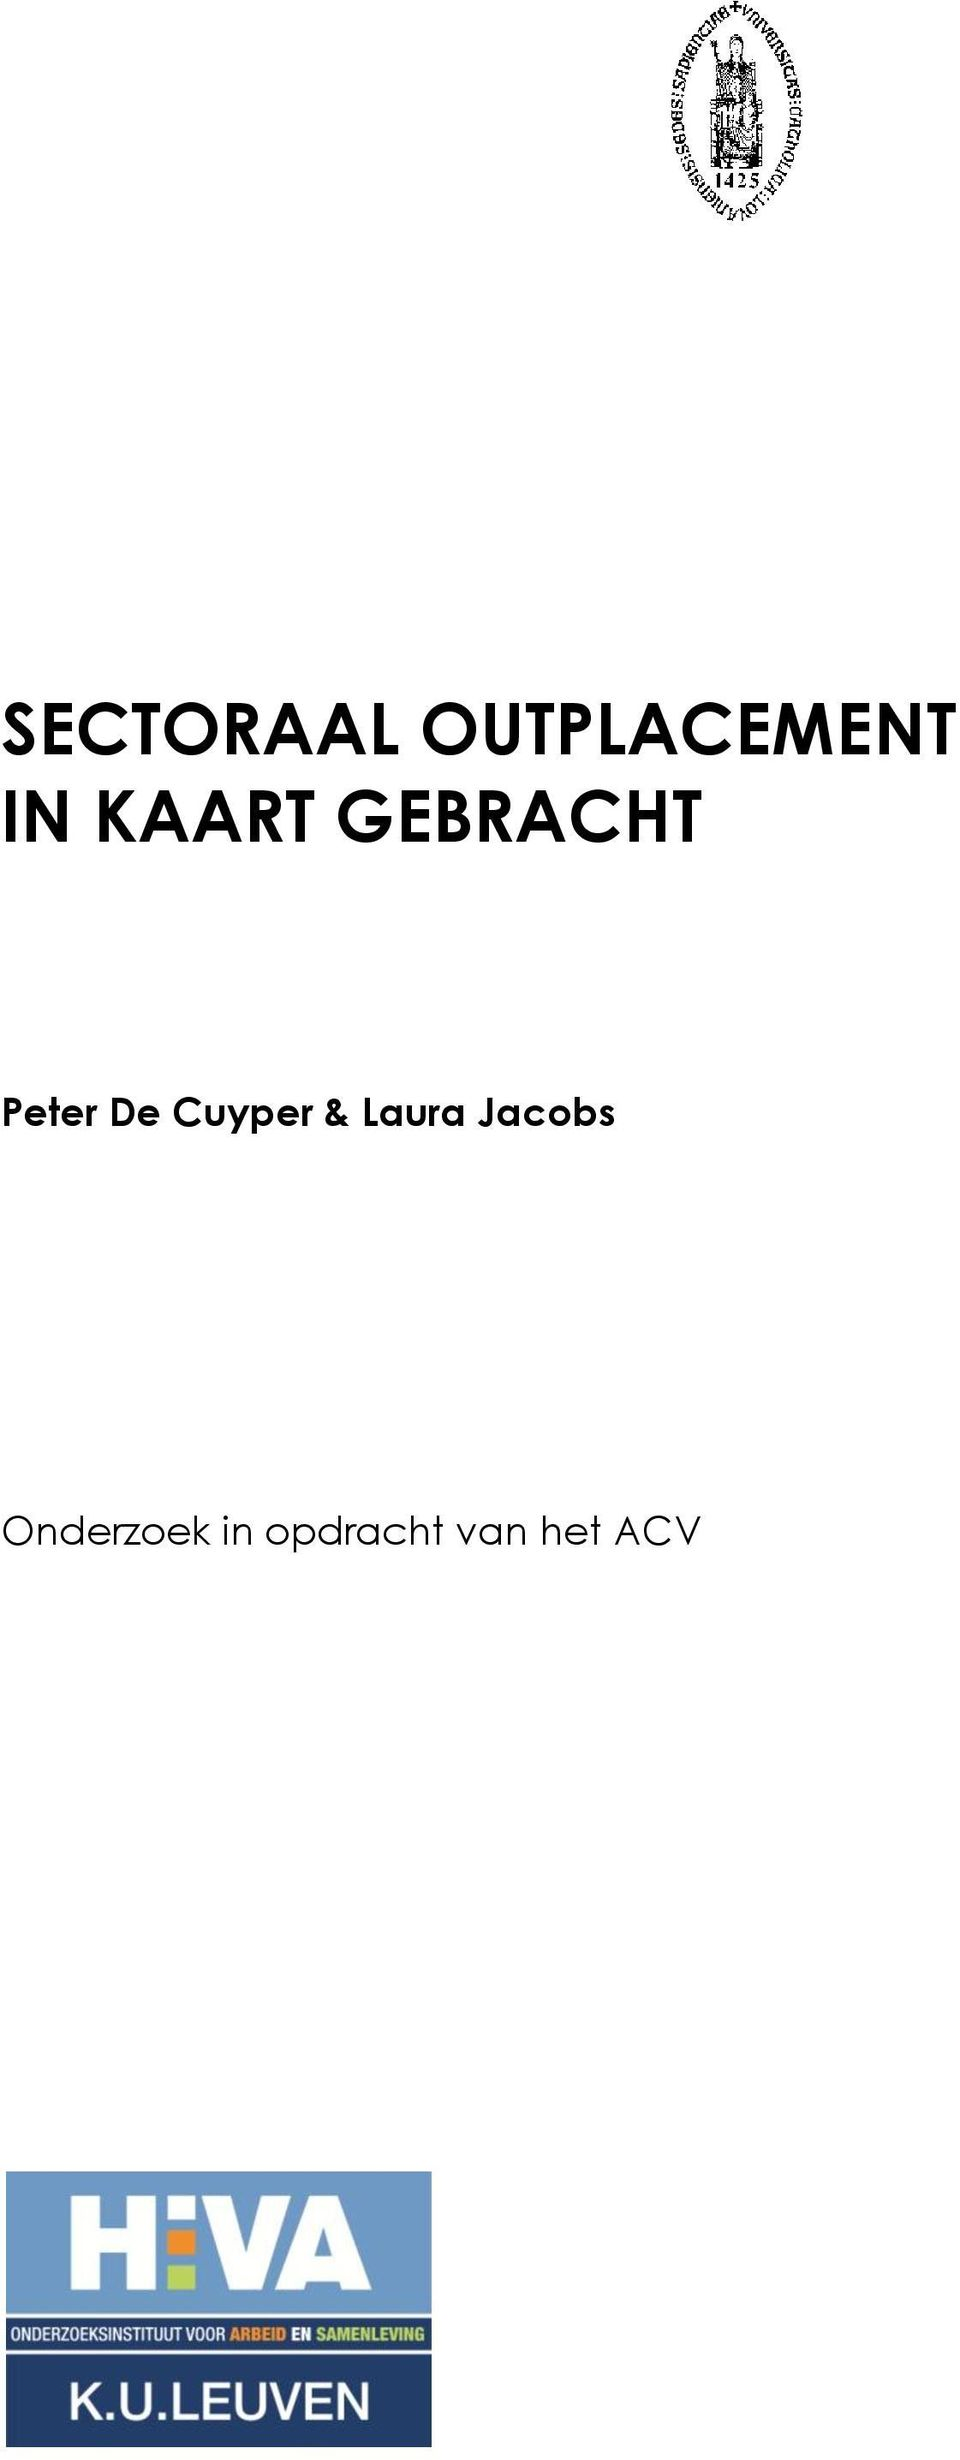 Cuyper & Laura Jacobs